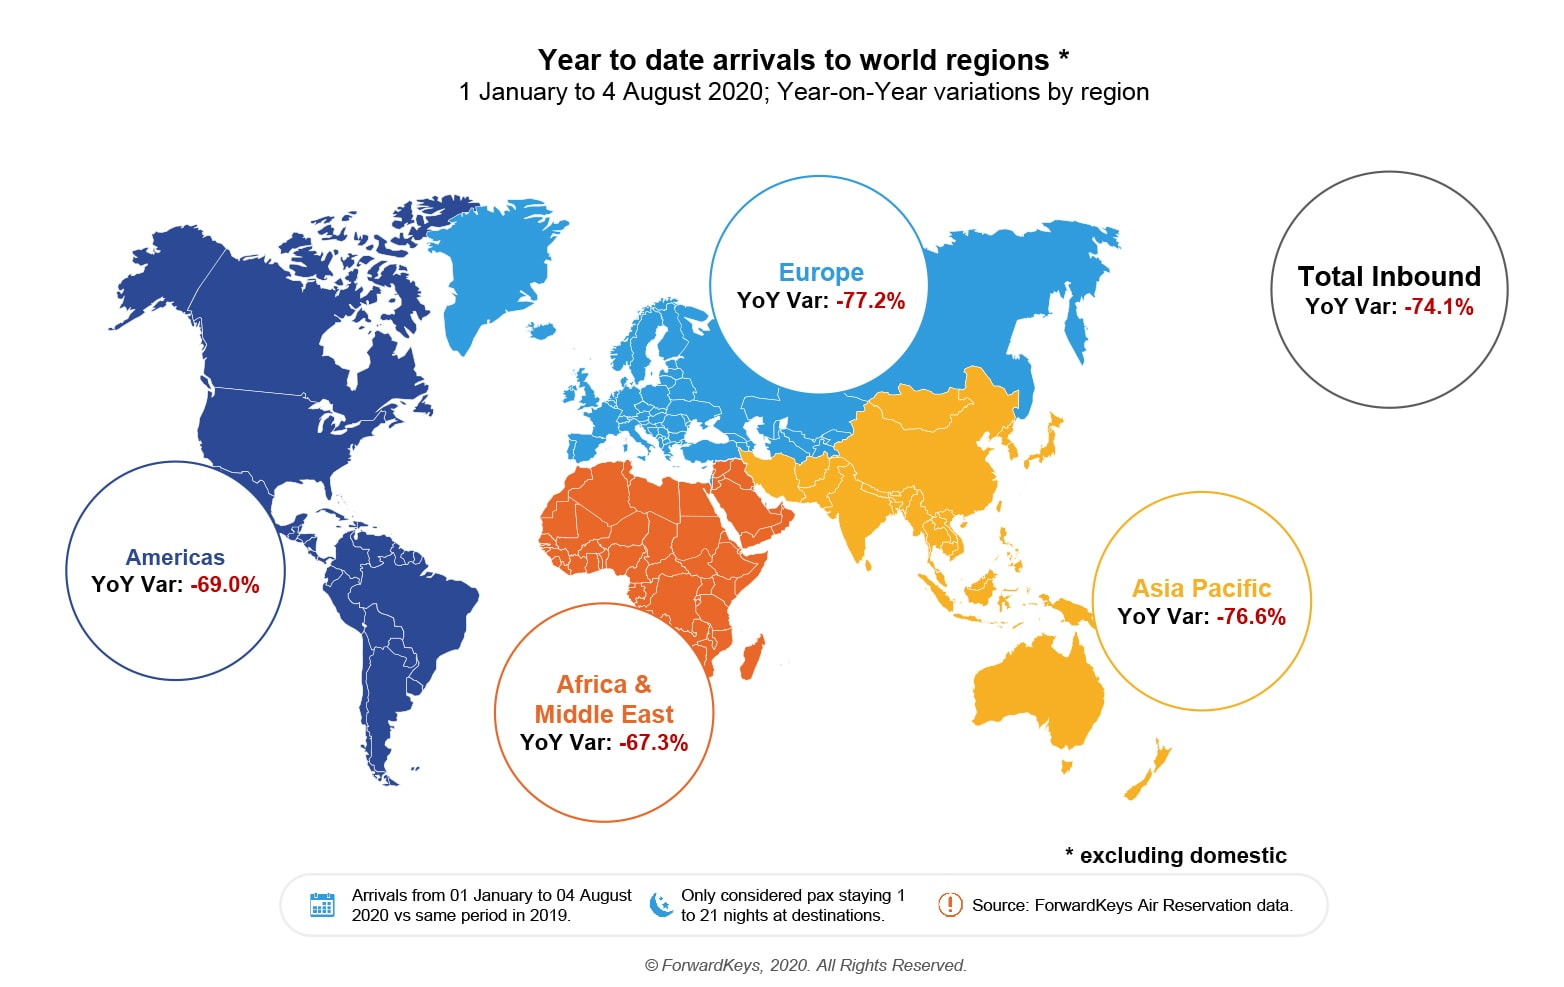 Year-to-date-arrivals-to-world-regions-1